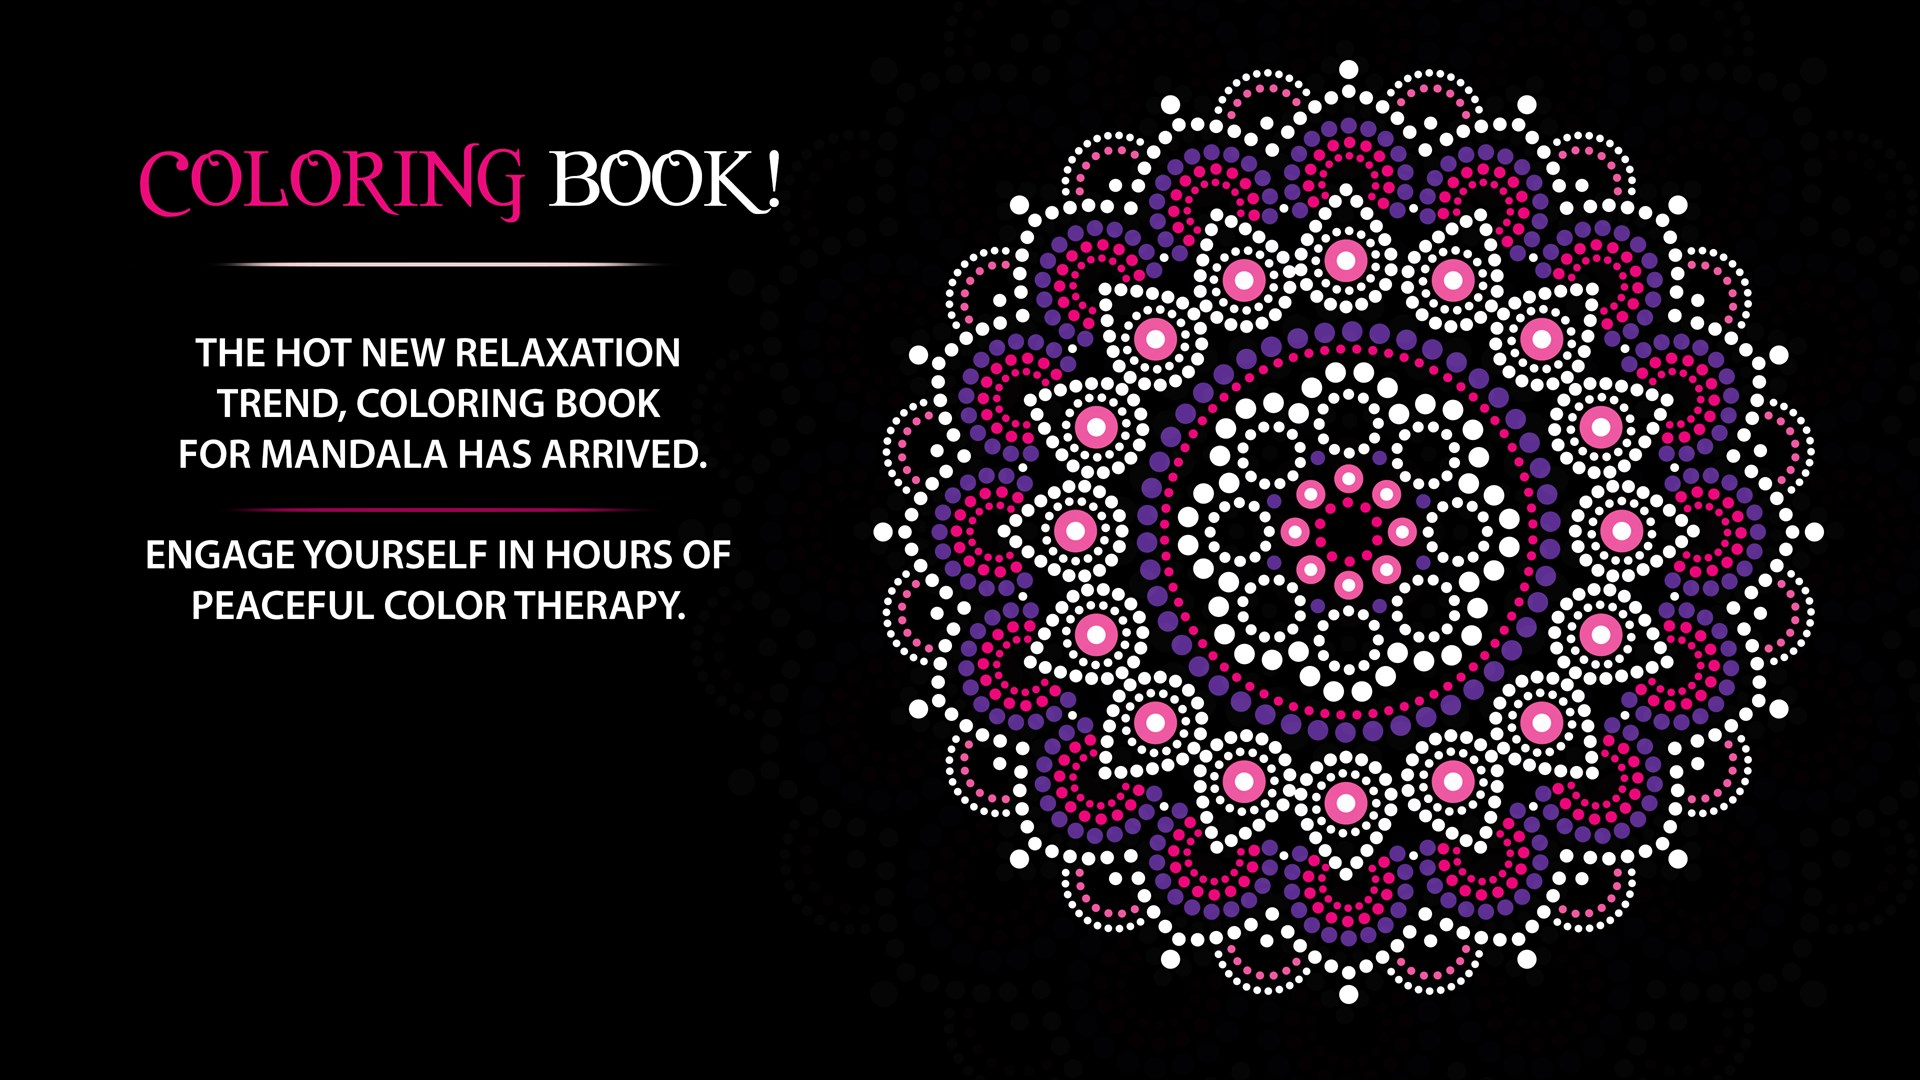 Get Coloring Book for Mandala - Adults Coloring Book - Microsoft Store